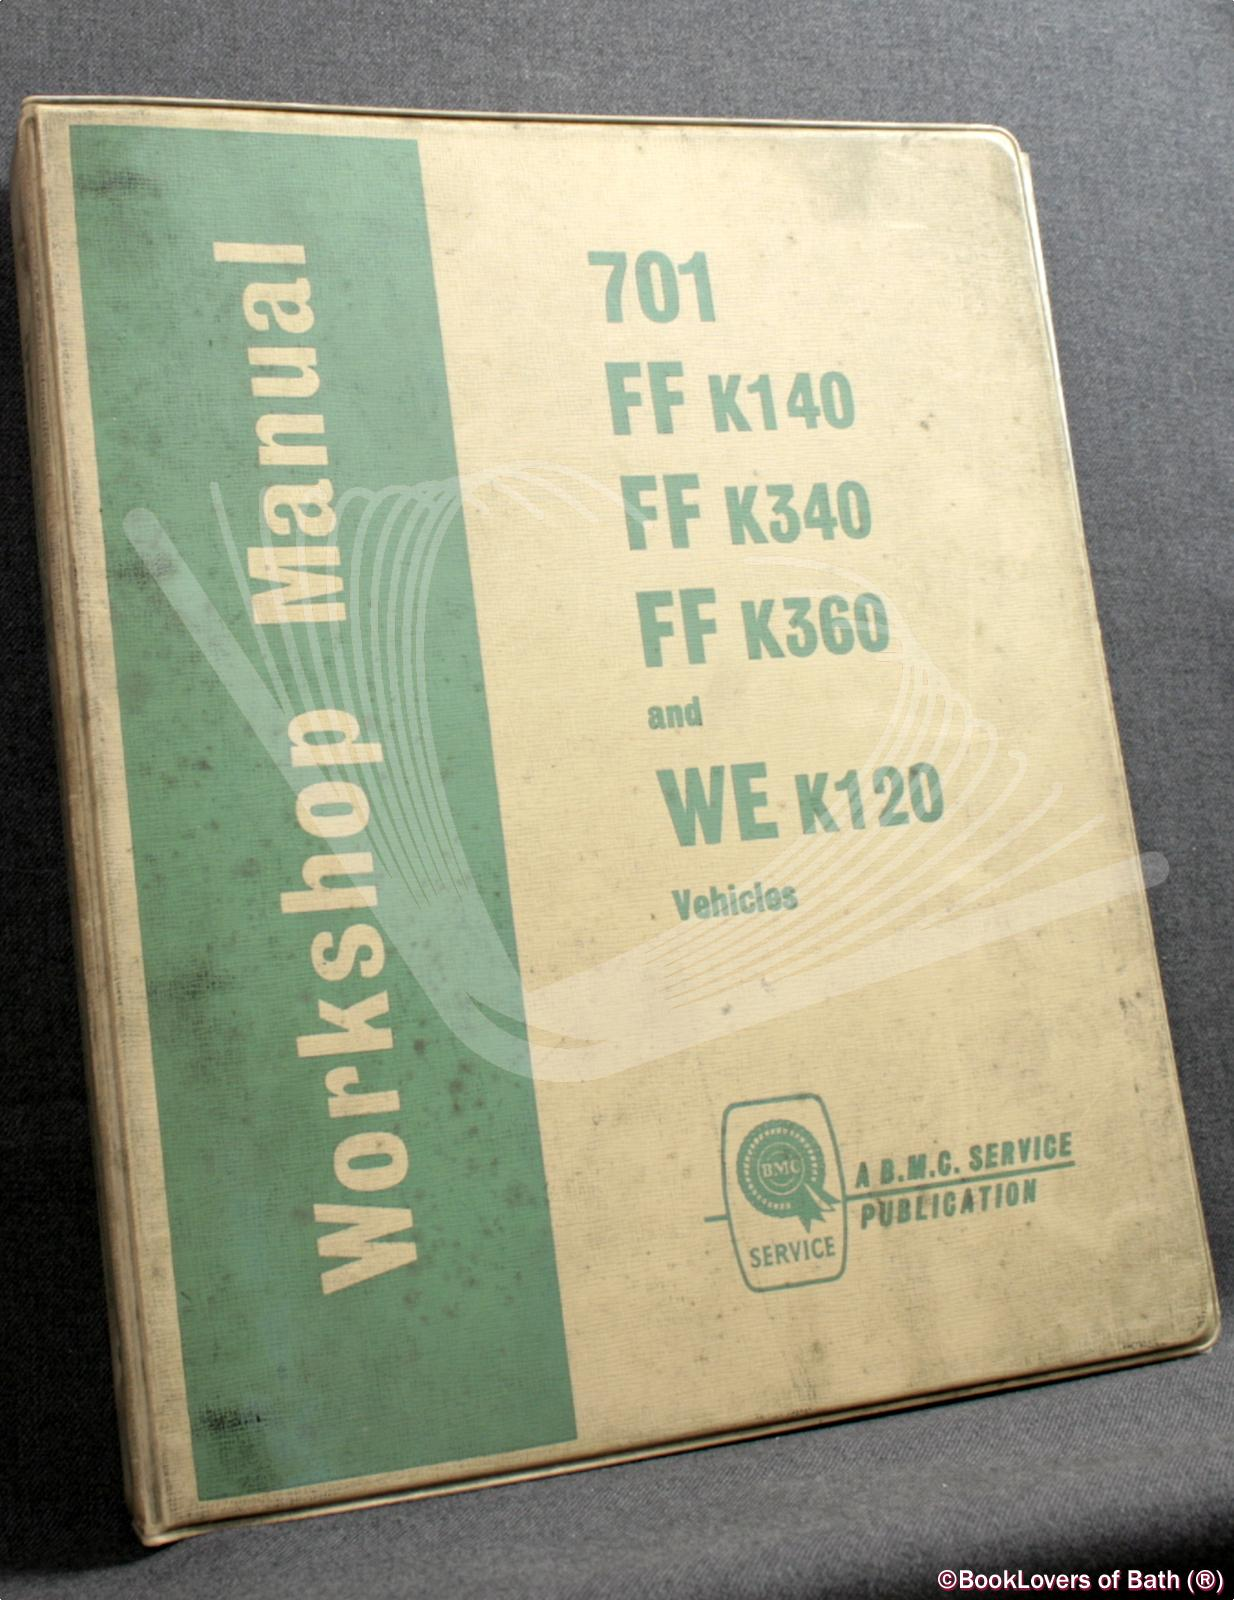 Workshop Manual 701, FF K140, FF K340, FF K360 and WE K120 Vehicles 7-ton. Issue 5. 55216 - Anon.